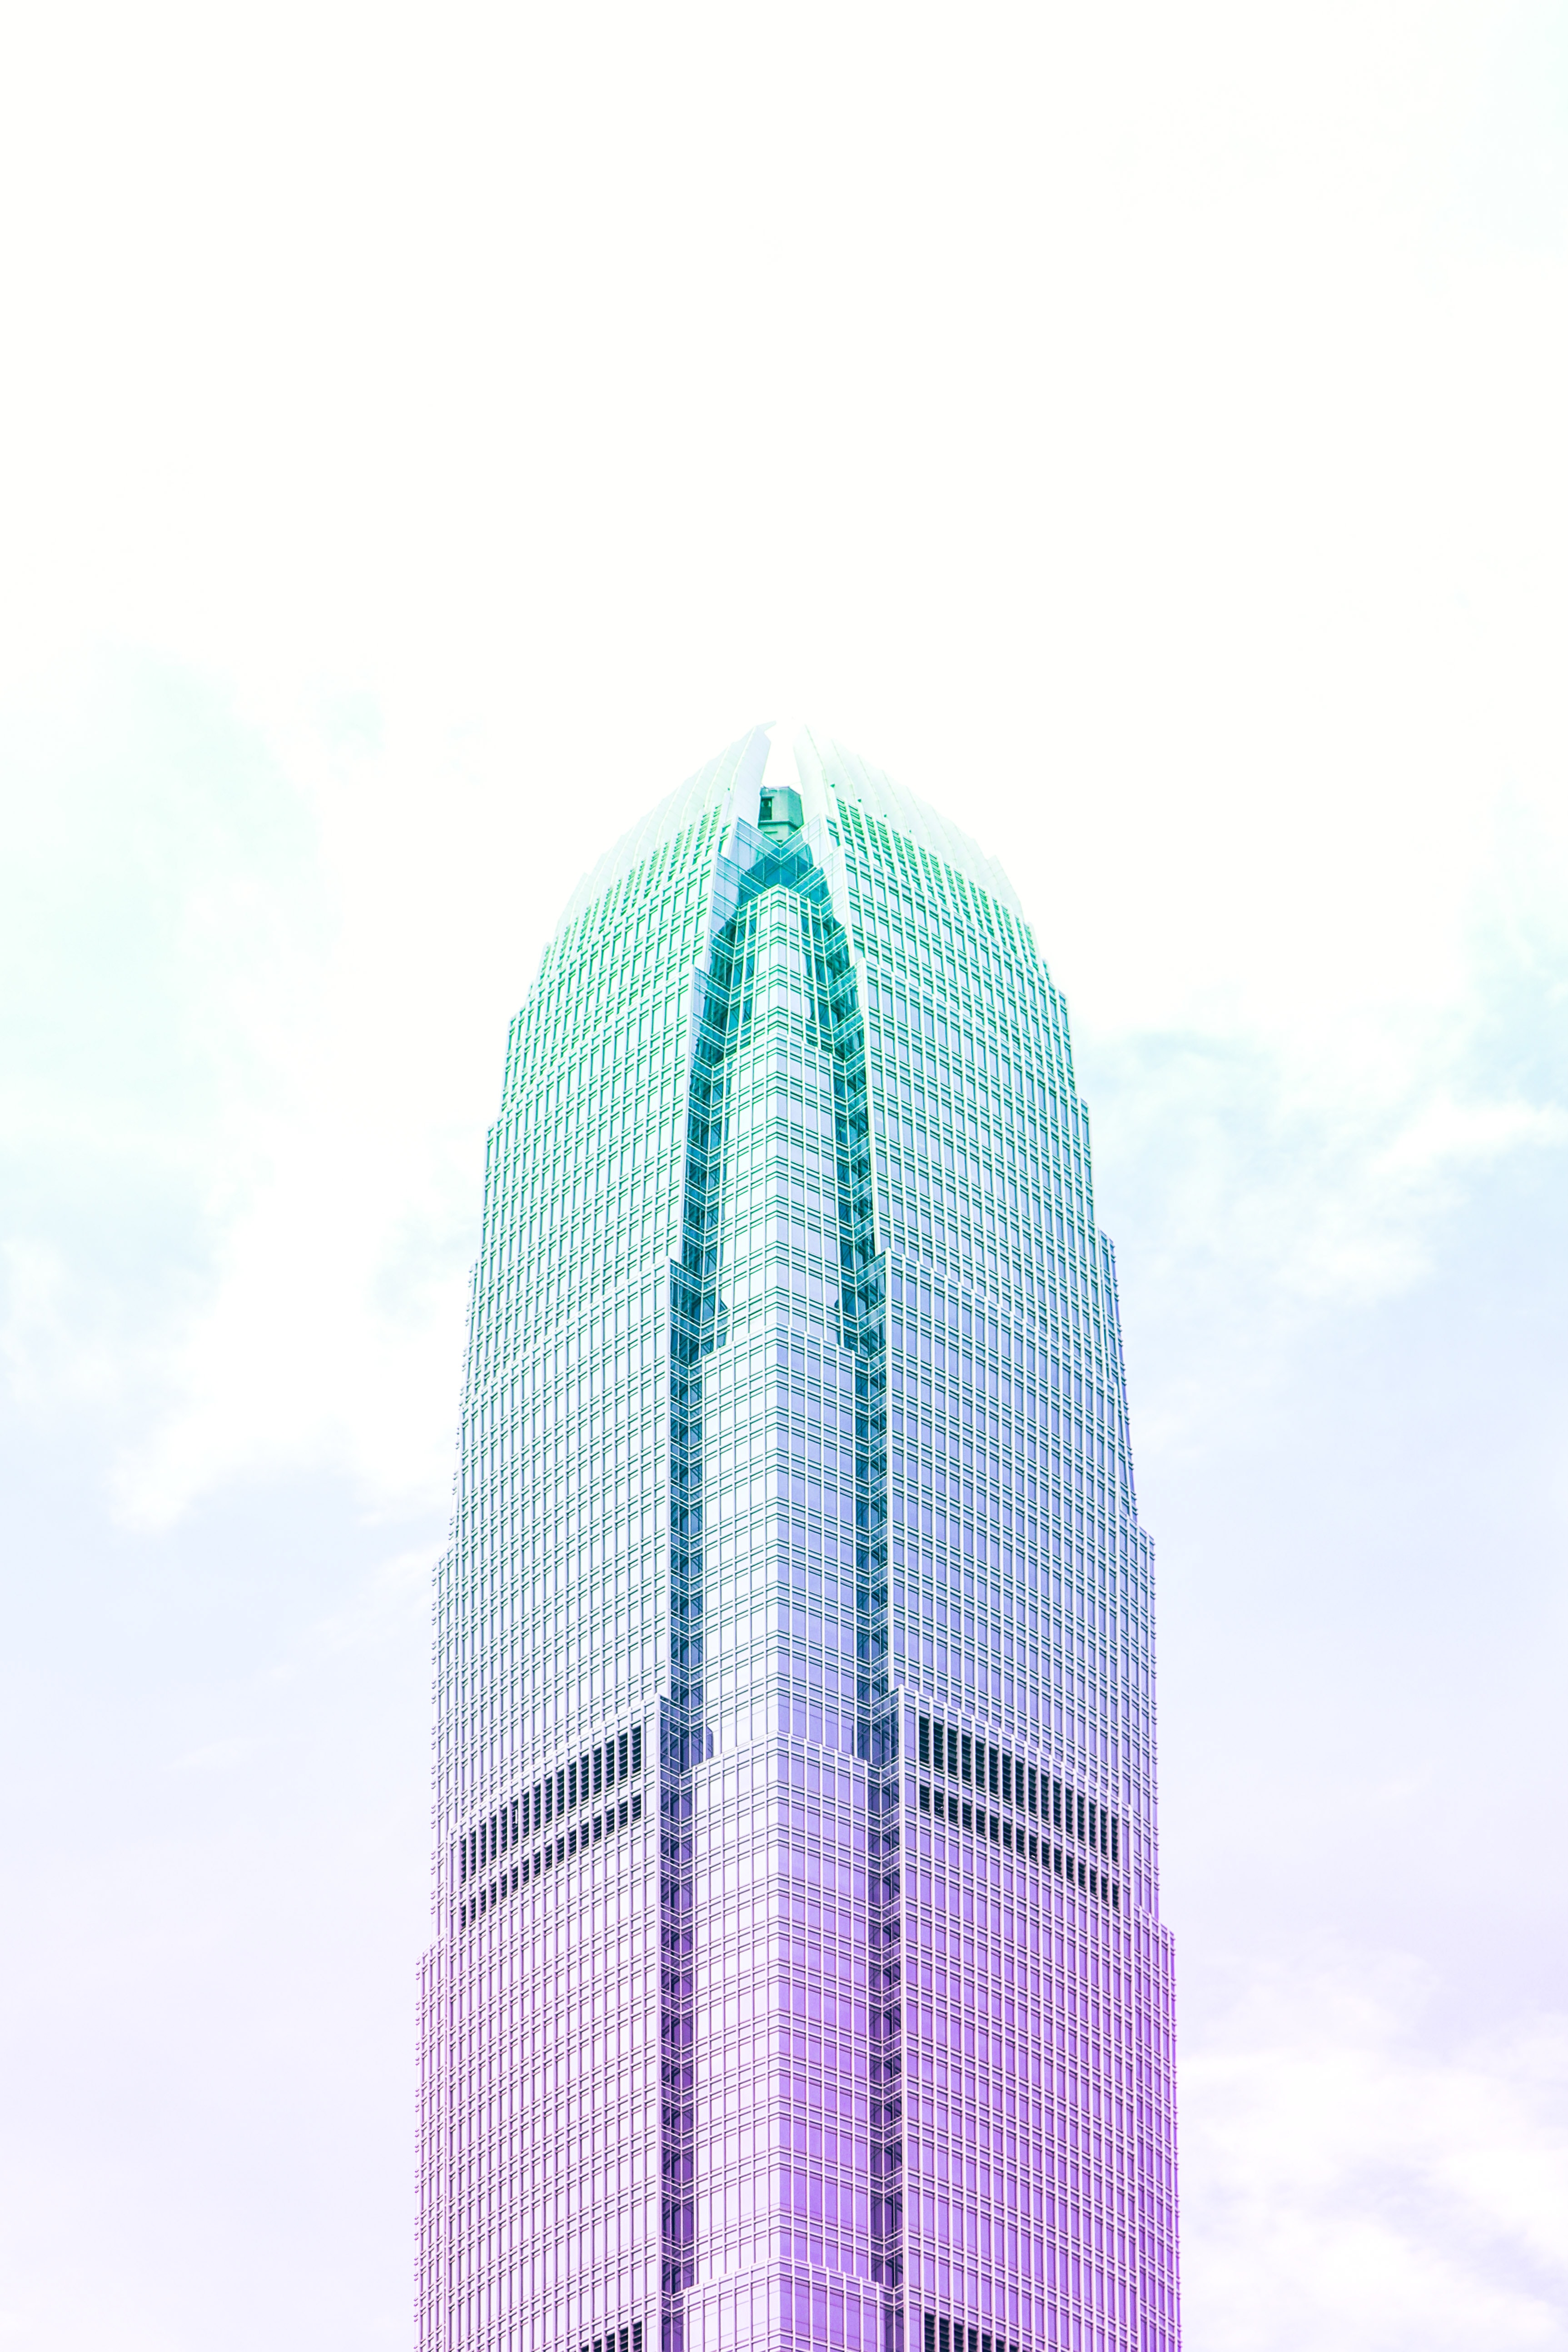 low angle photography of teal and pink highrise building